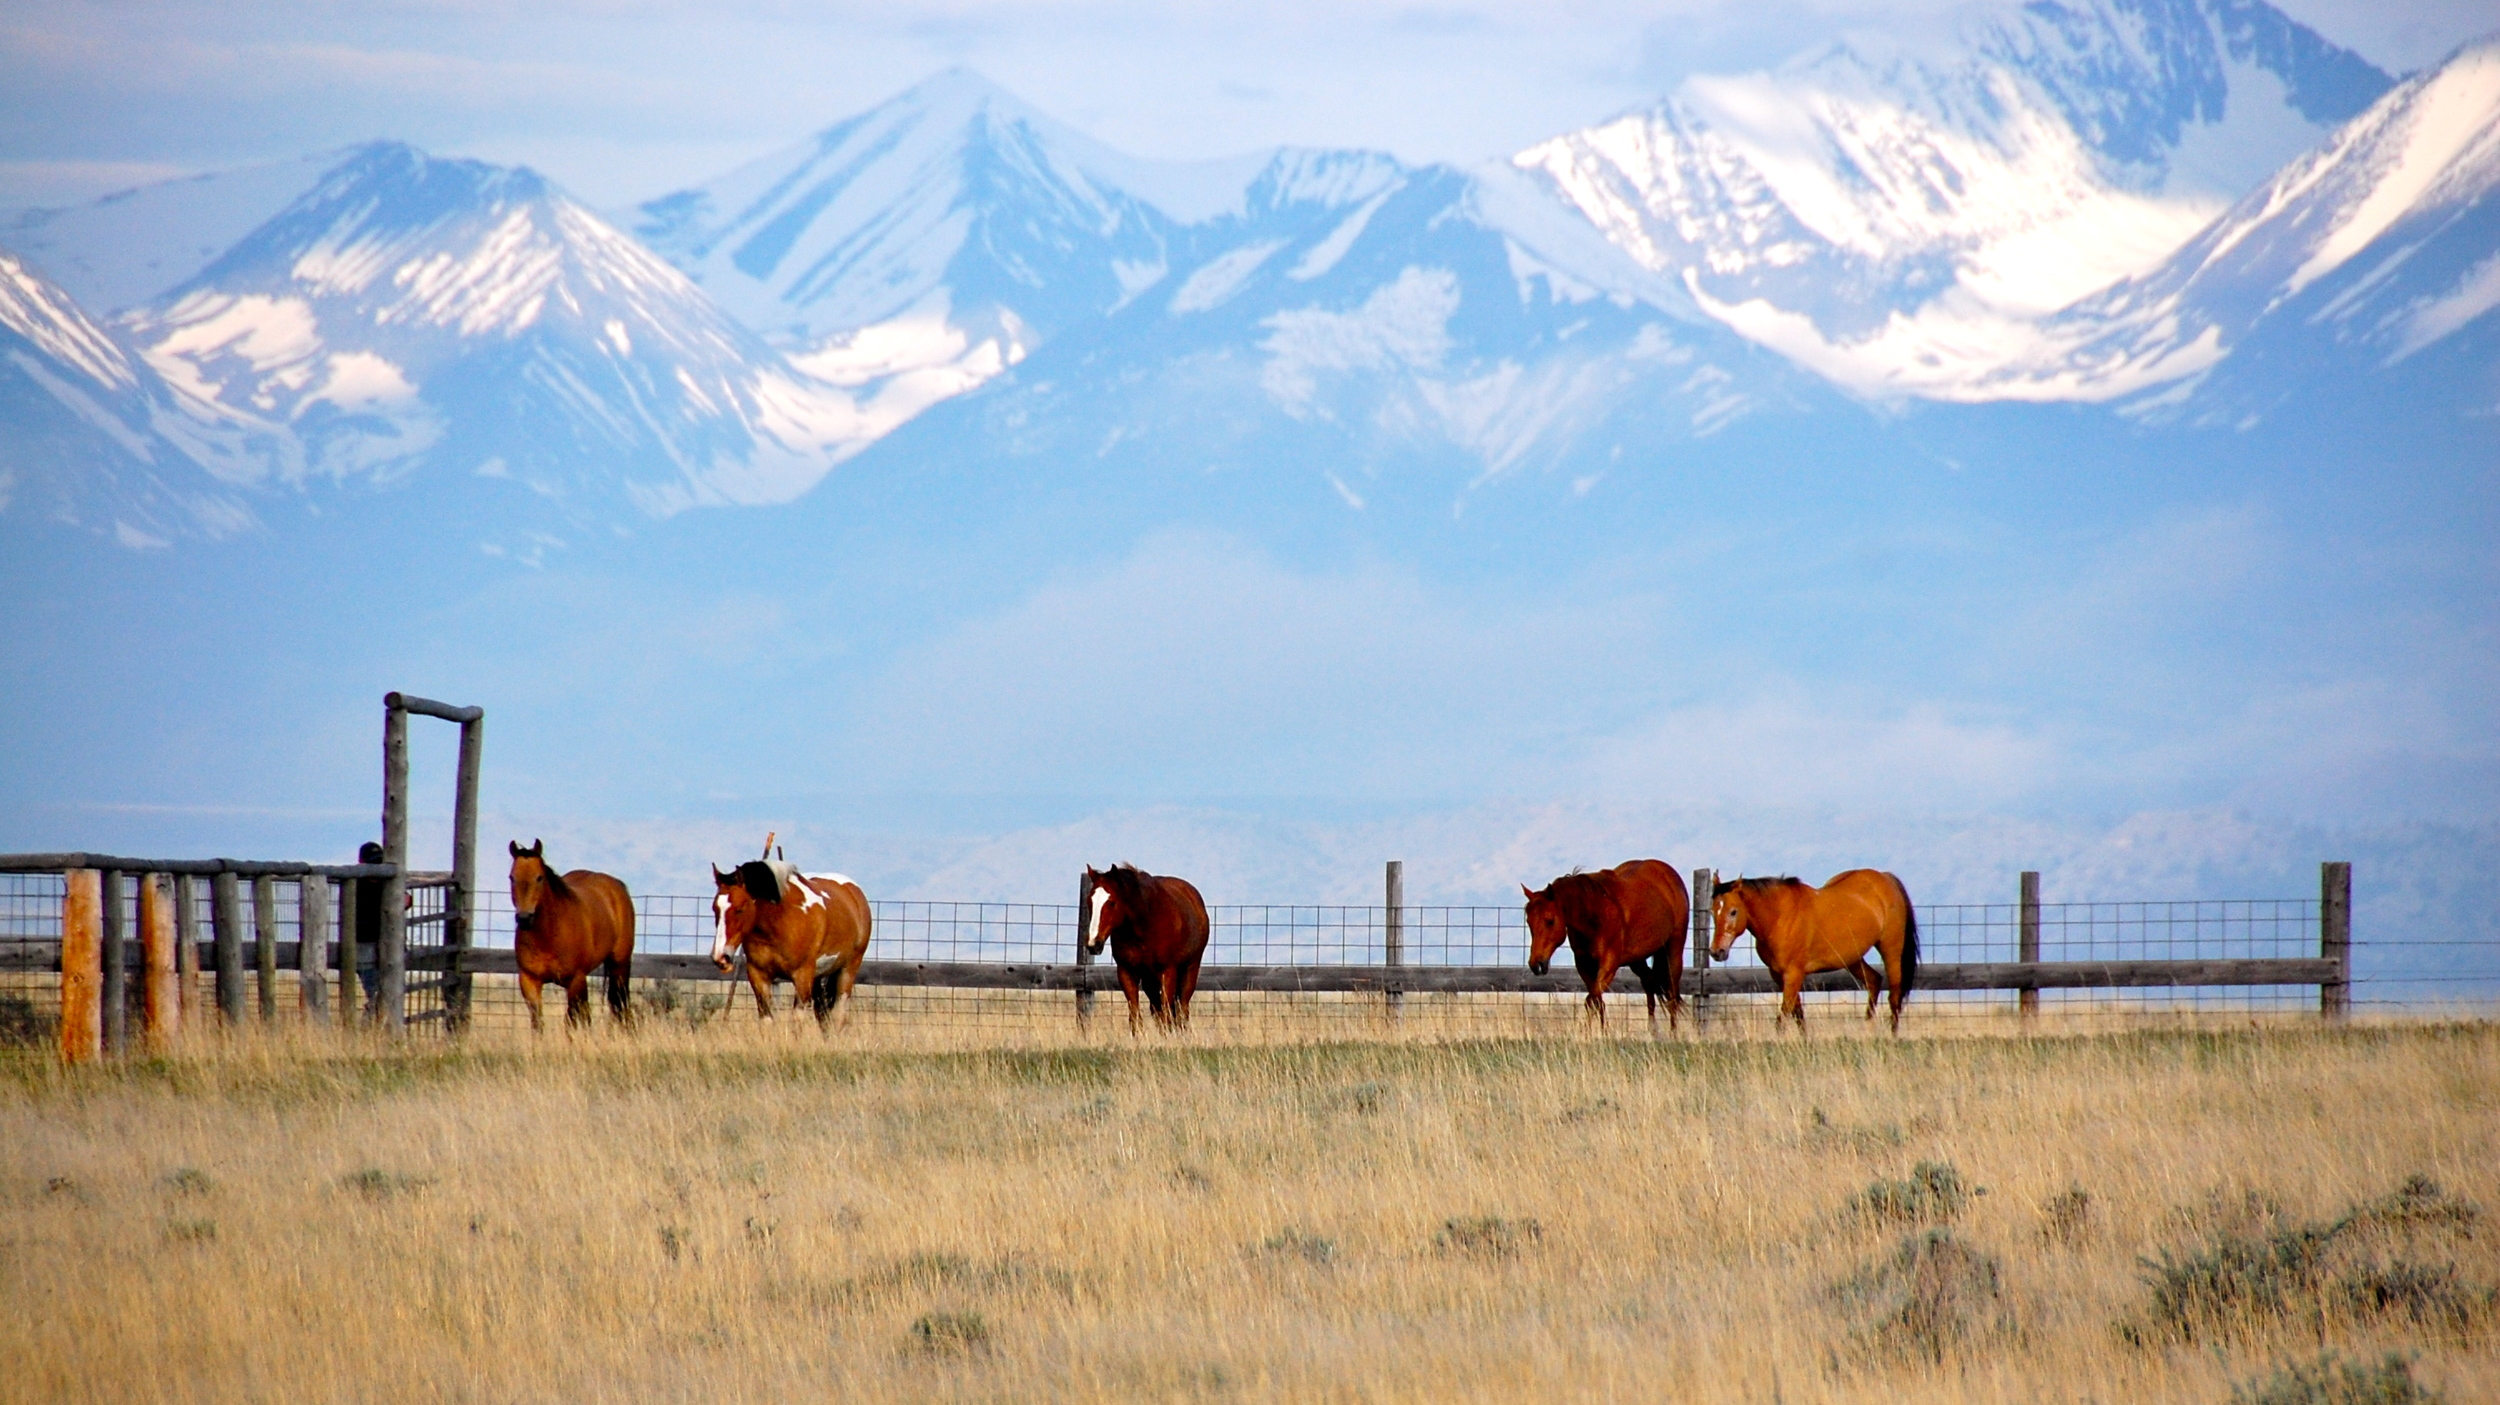 Horses on Montana ranch with mountains in the background